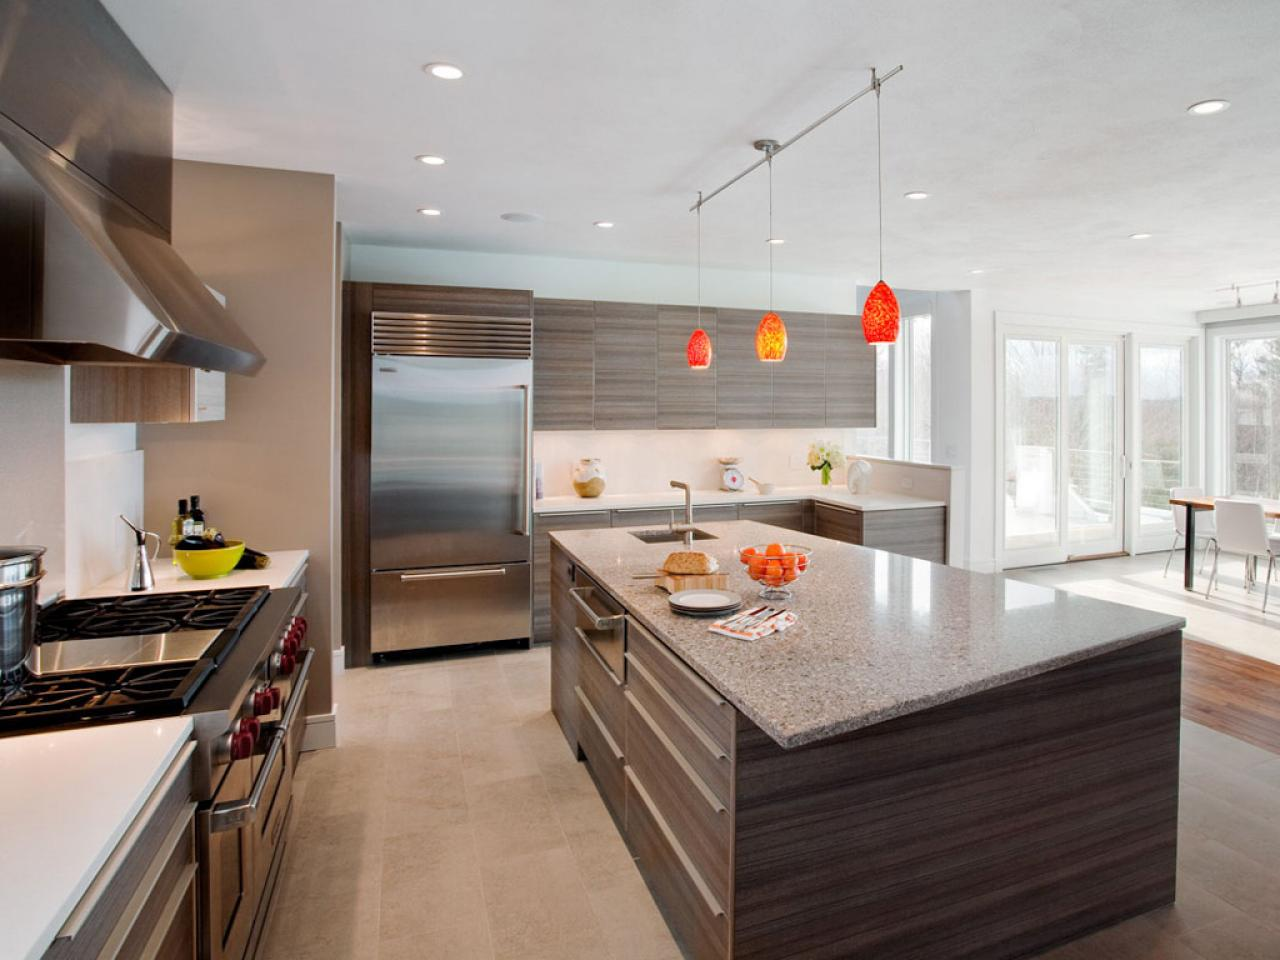 Orange Ceiling Lamps above Stylish Wooden Island in Open Kitchen with Modern Kitchen Cabinets